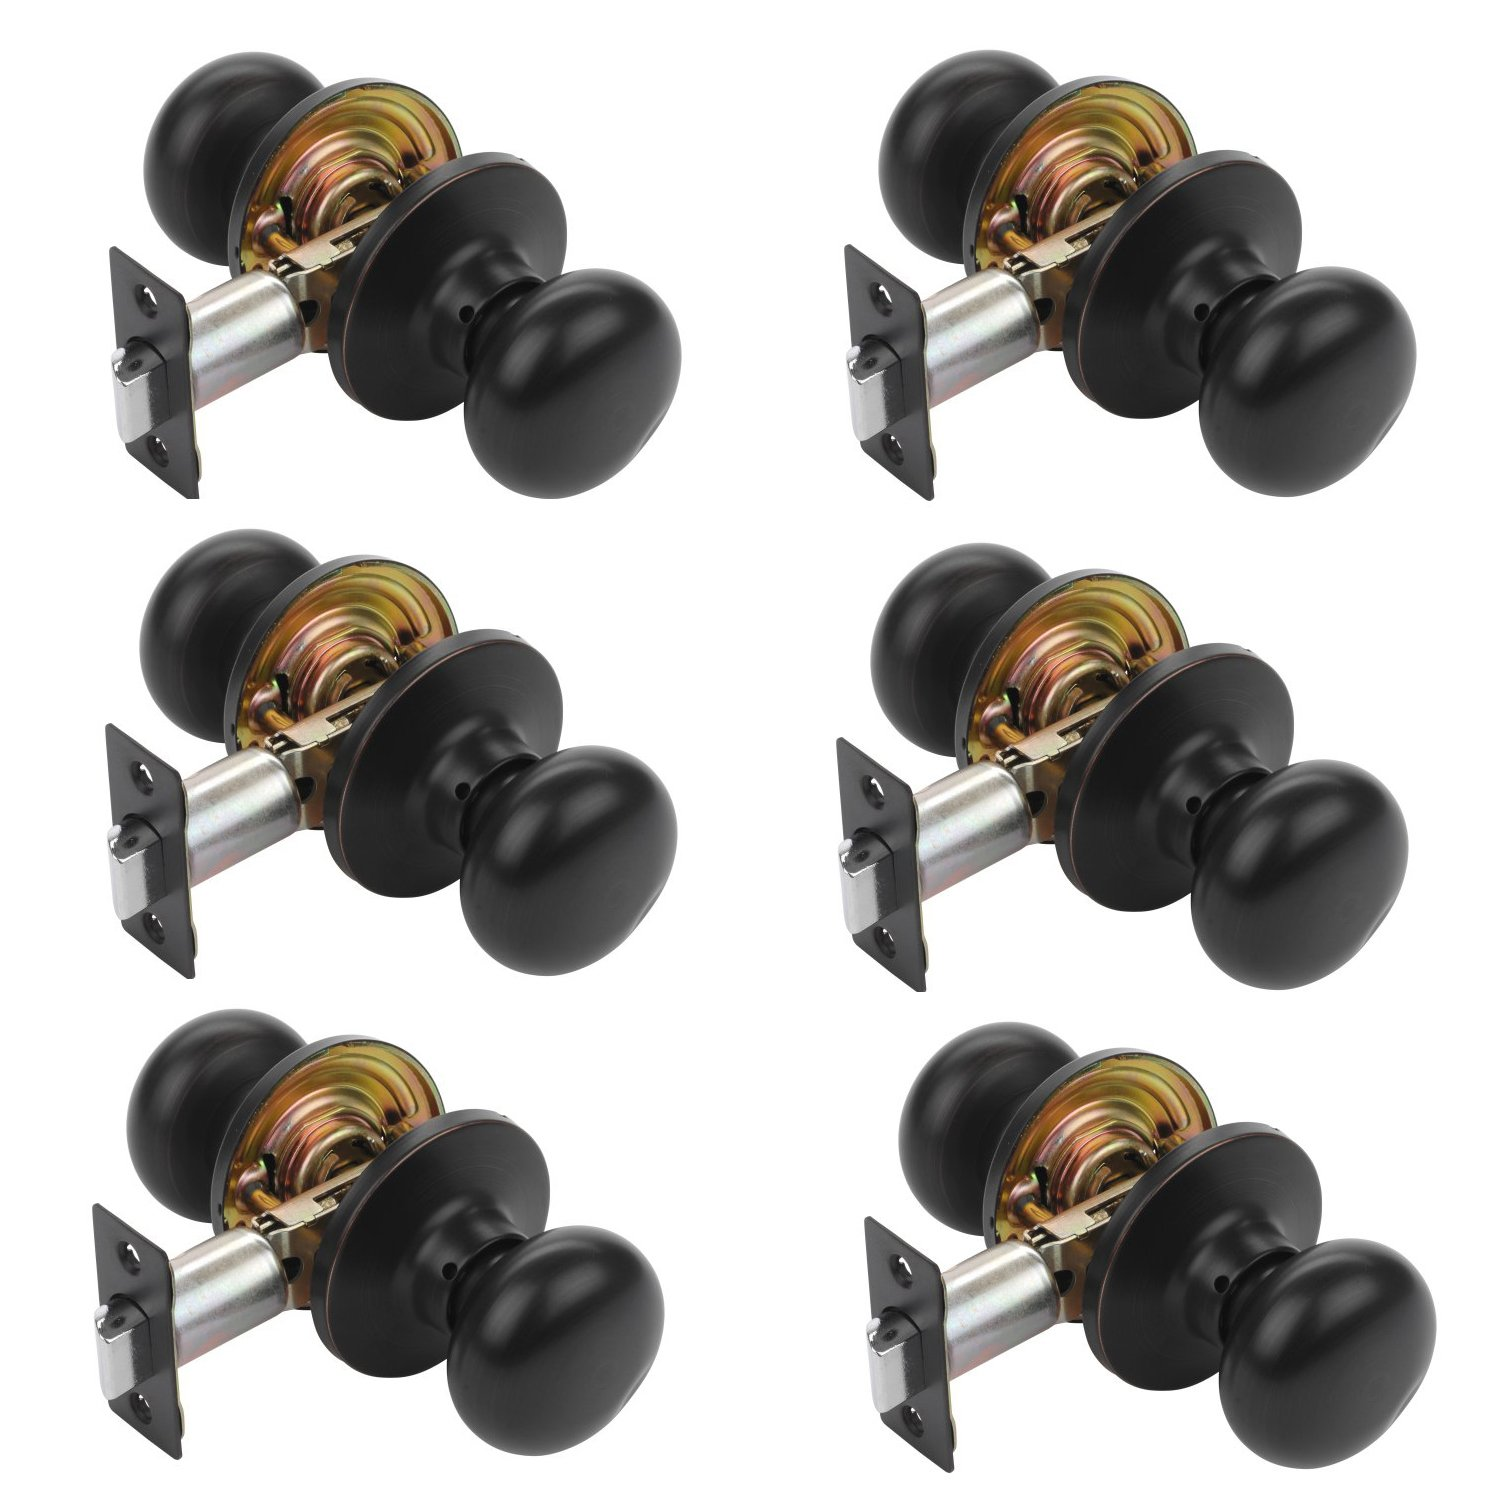 Dynasty Hardware TAH-82-12P Tahoe Door Knob Passage Set, Aged Oil Rubbed Bronze, Contractor Packs (6 Pack)